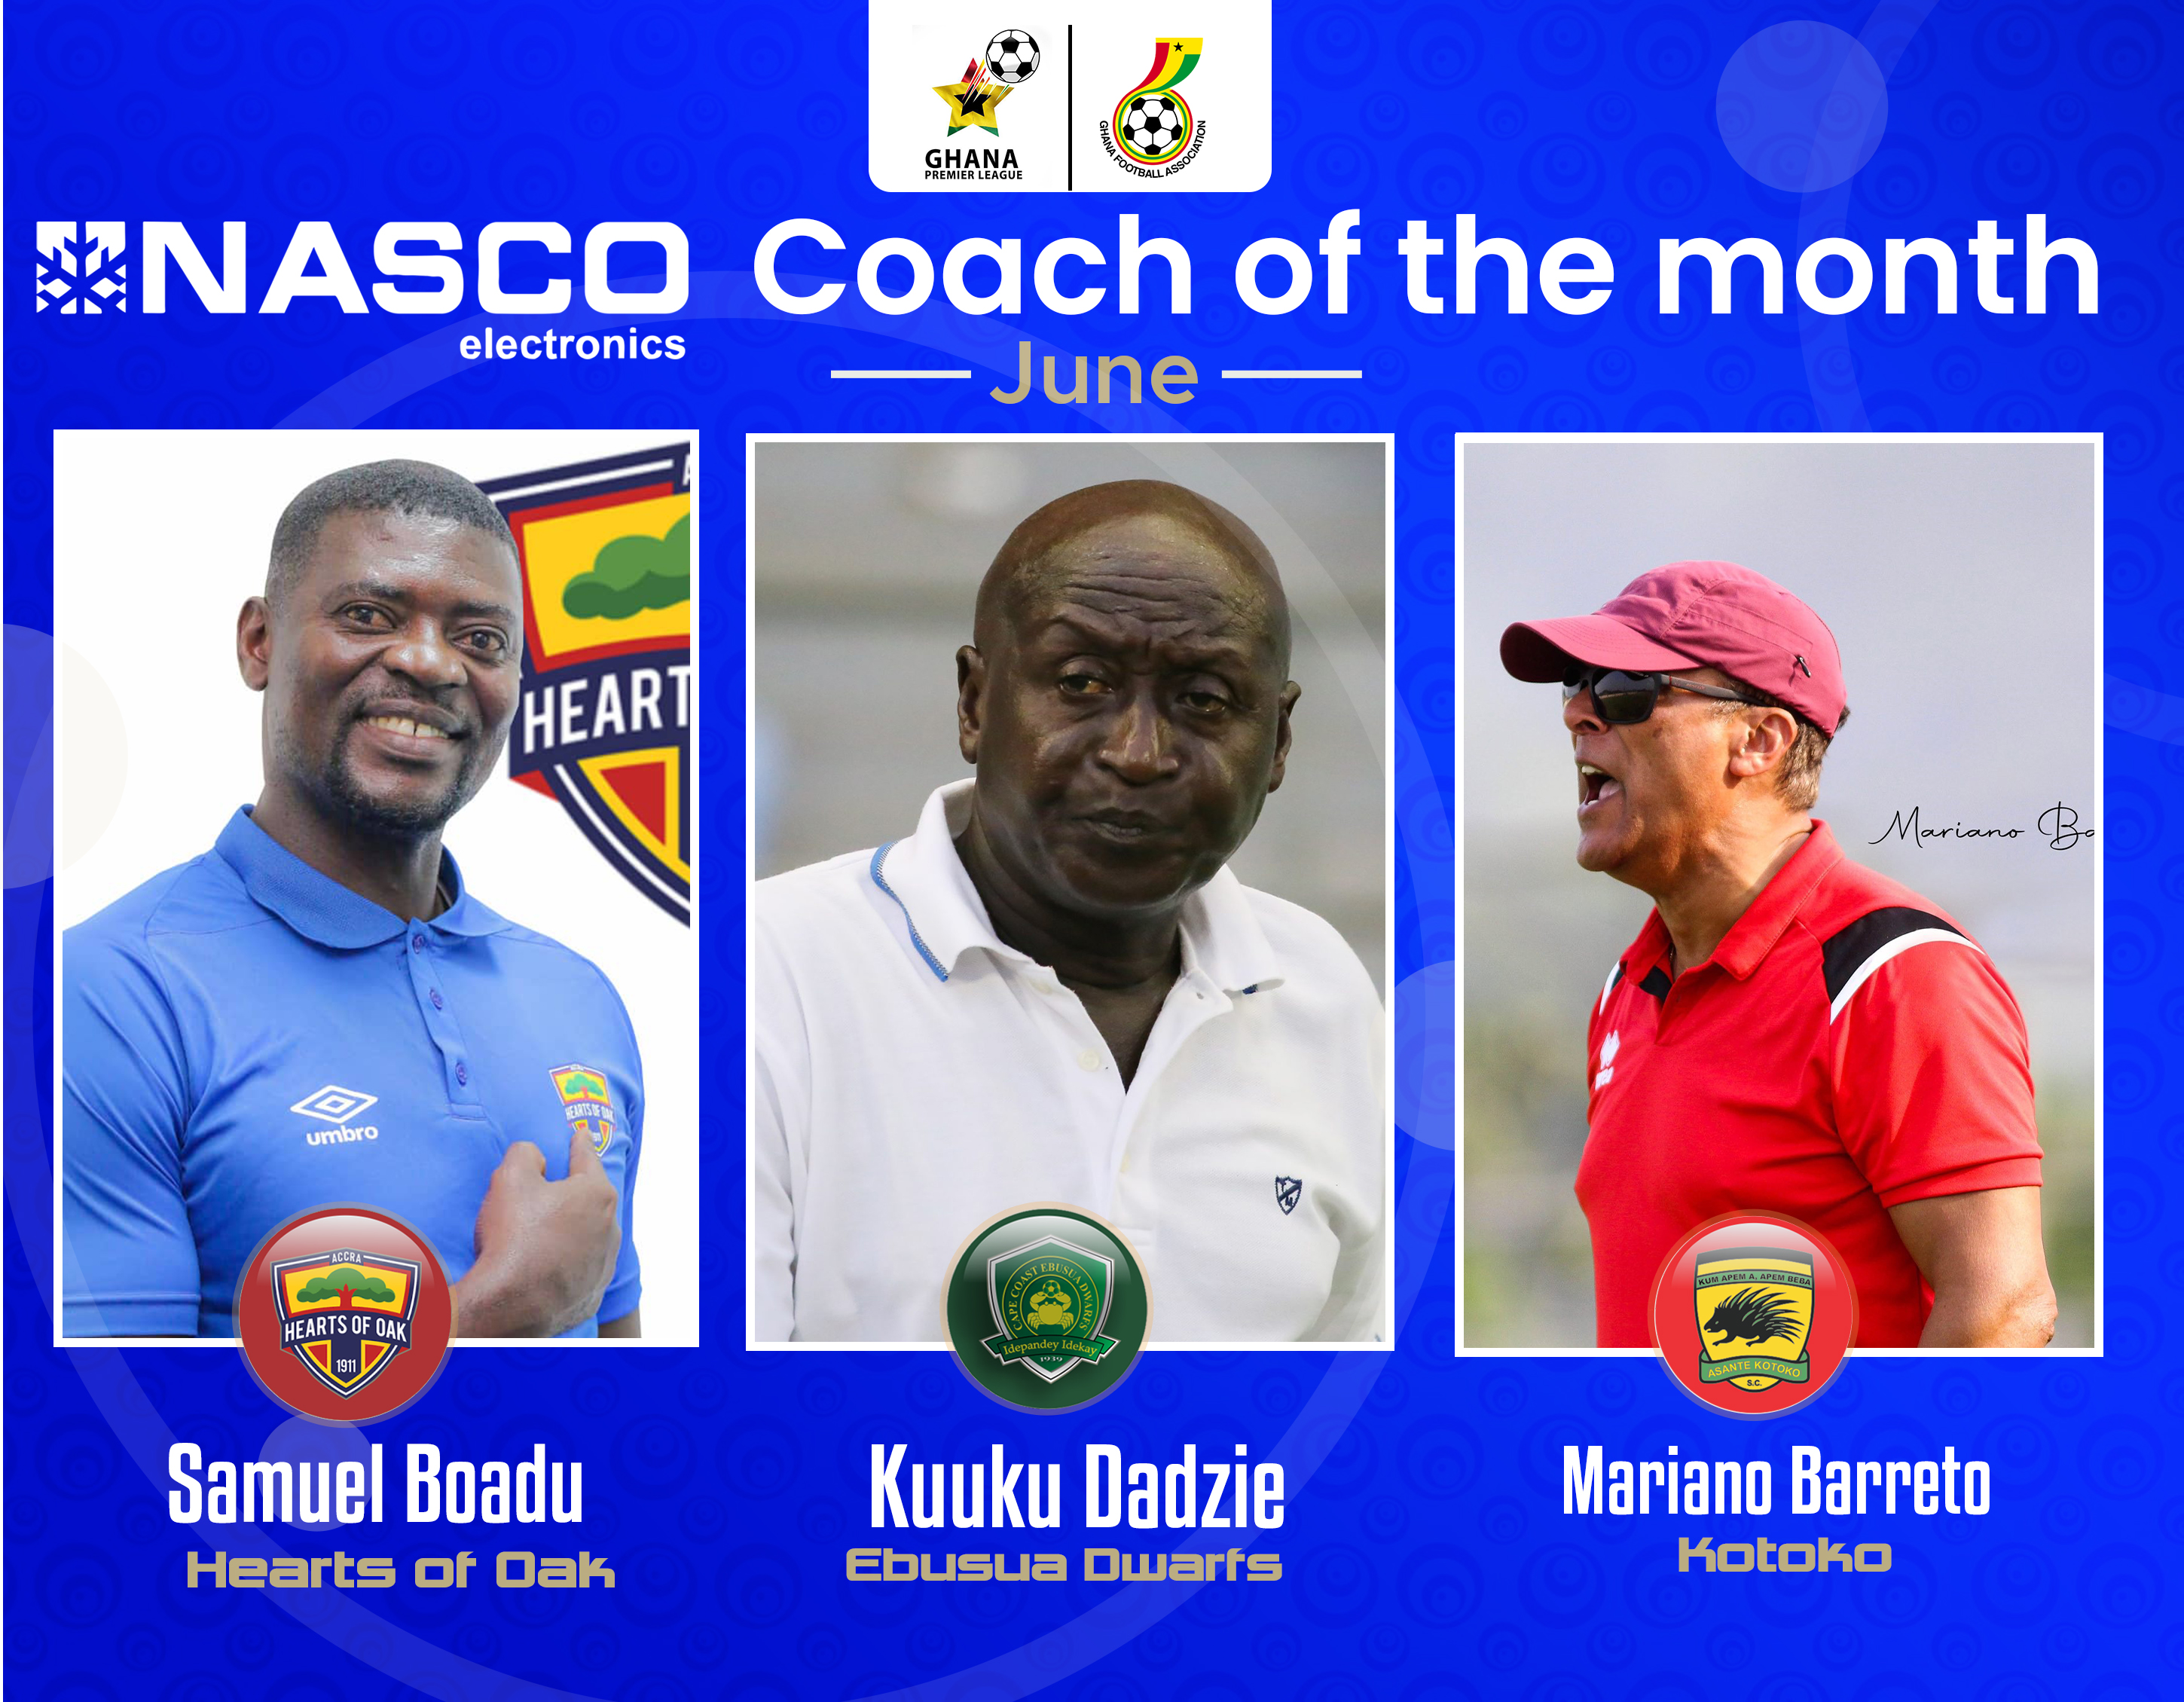 GPL: Boadu, Baretto, Dadzie nominated for NASCO Coach of the Month for June